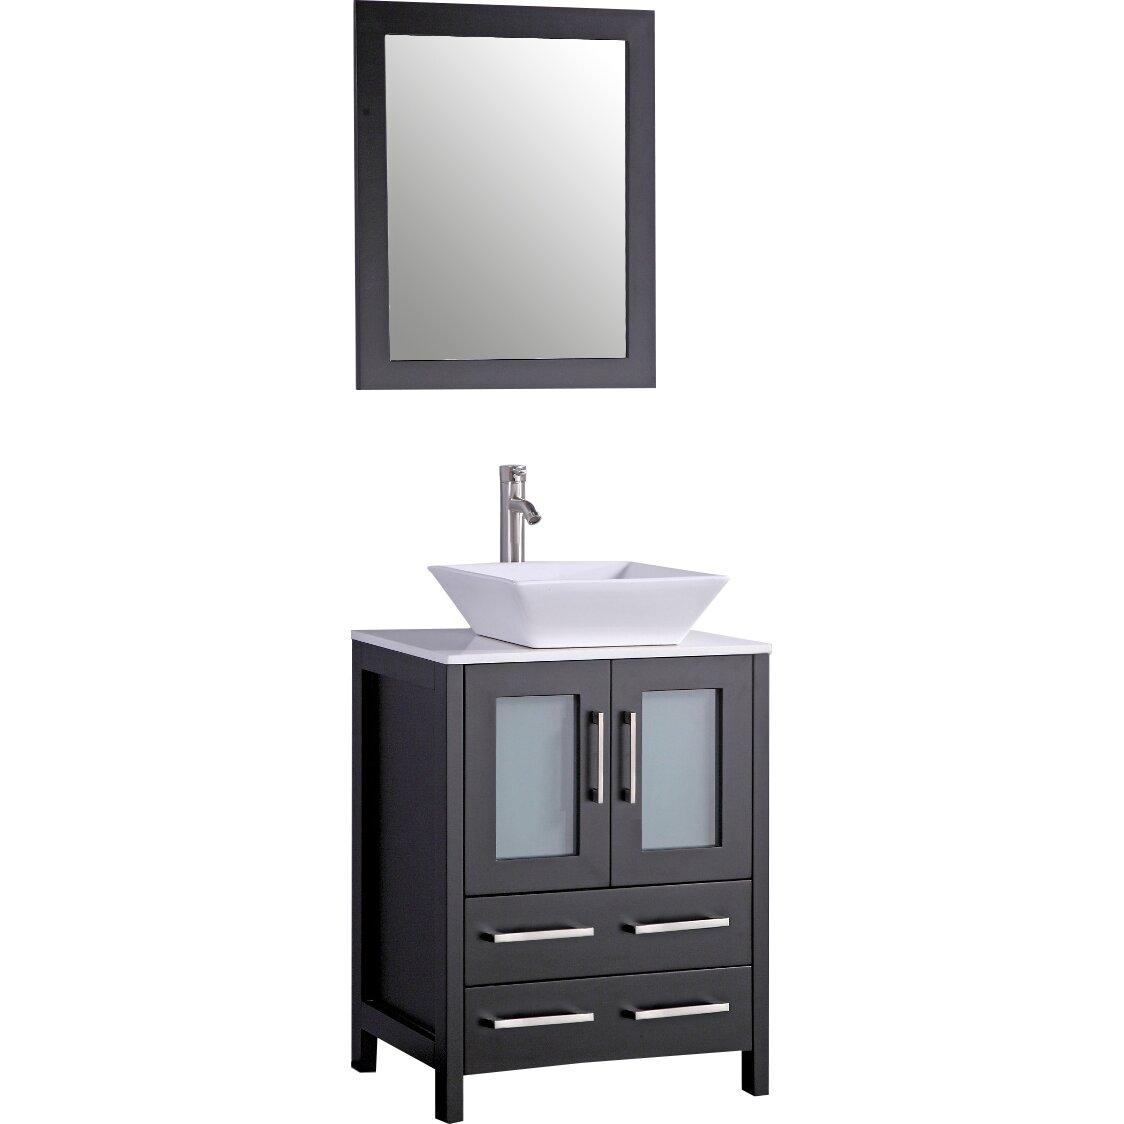 30 Bathroom Vanity Set By Legion Furniture modern bathroom vanity set izano. legion furniture 30 single